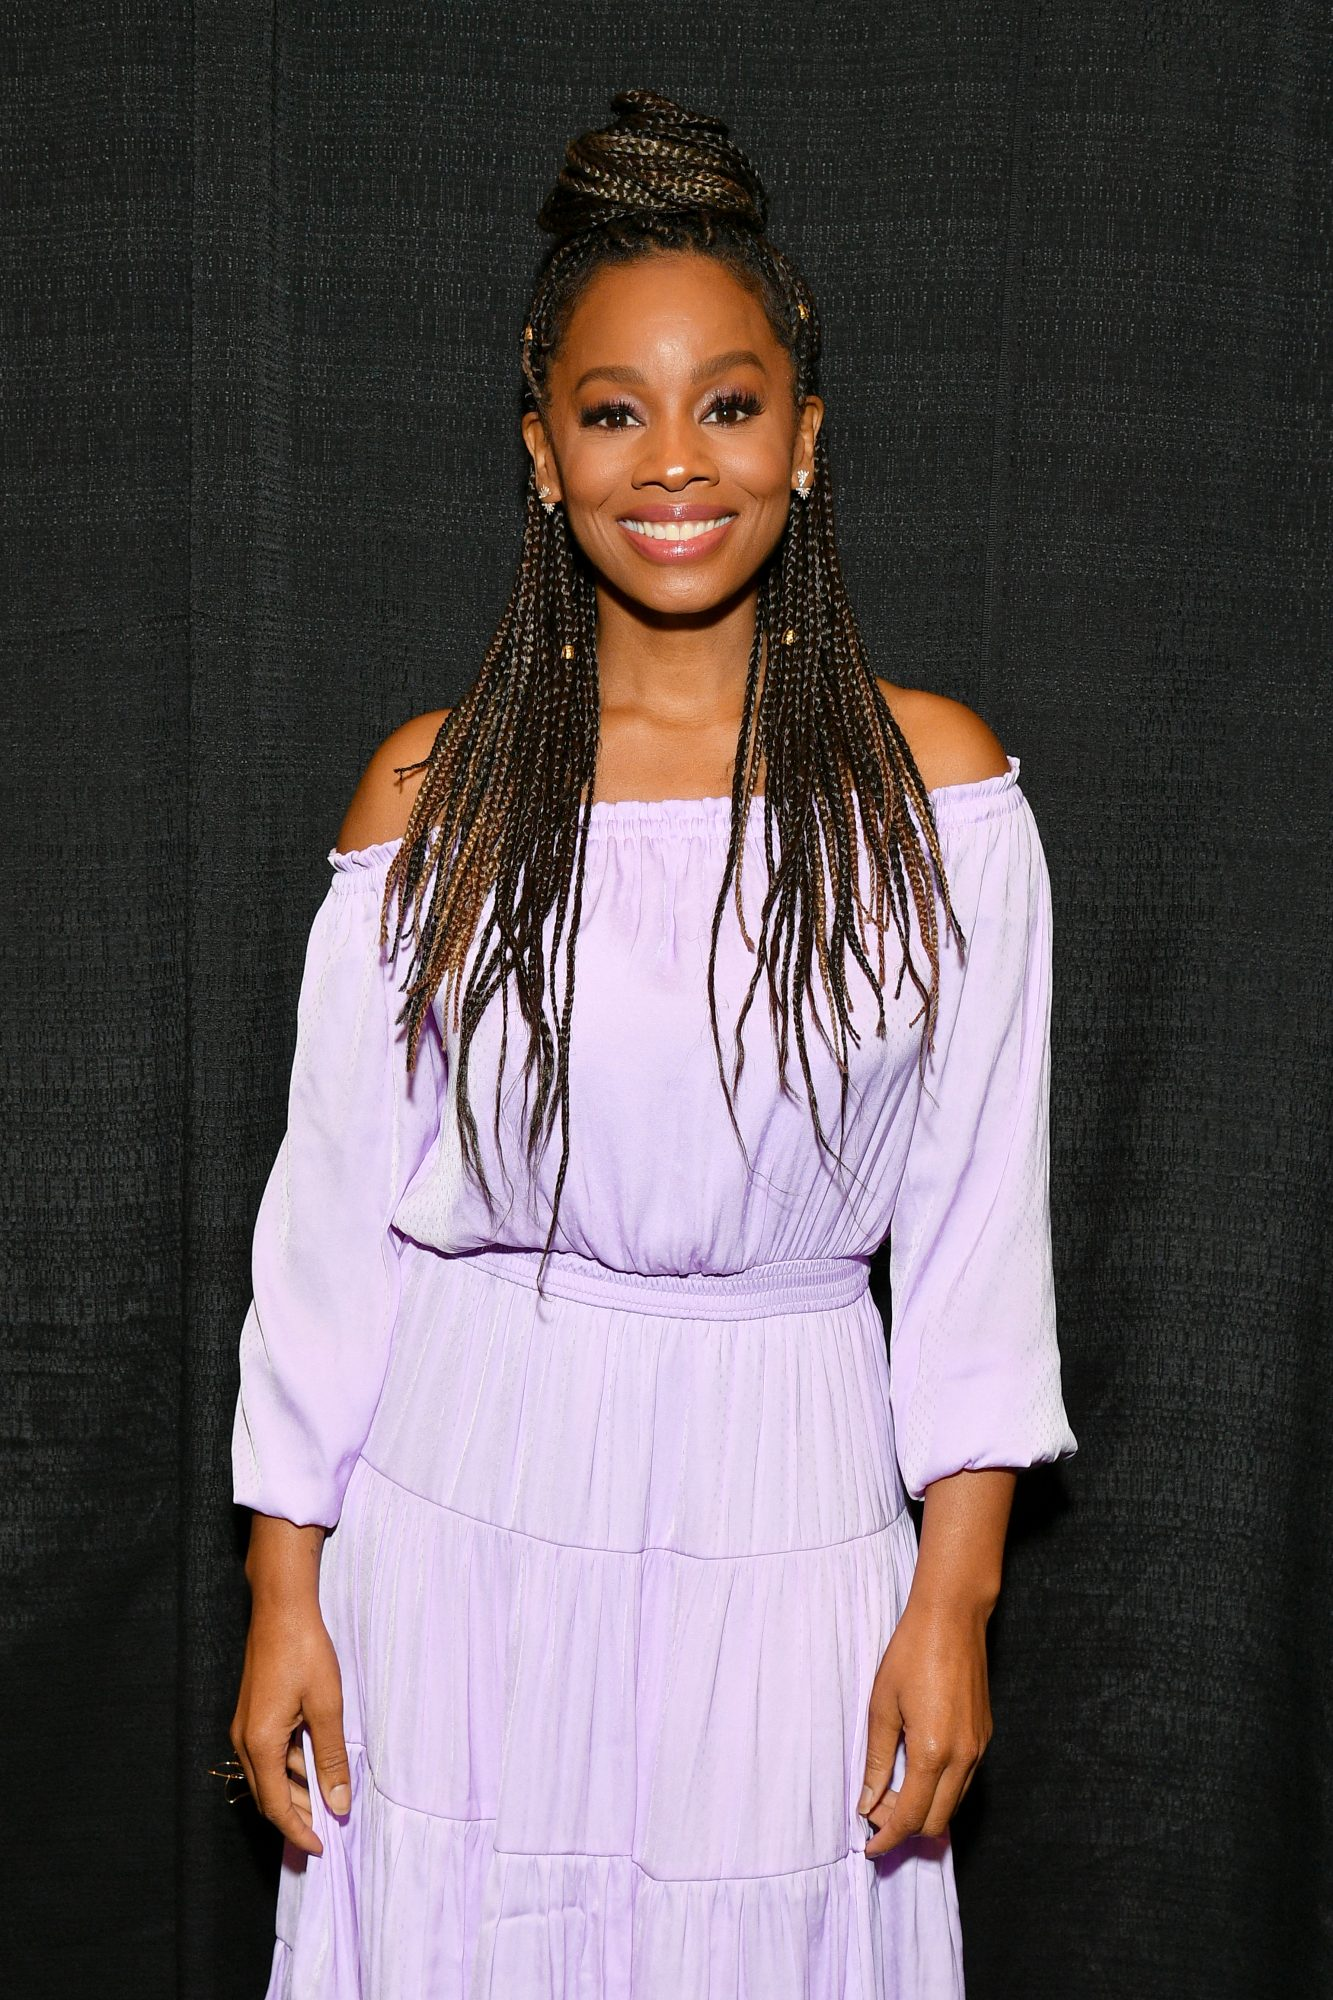 Anika Noni Rose On What To Expect From Princess And The Frog Ride